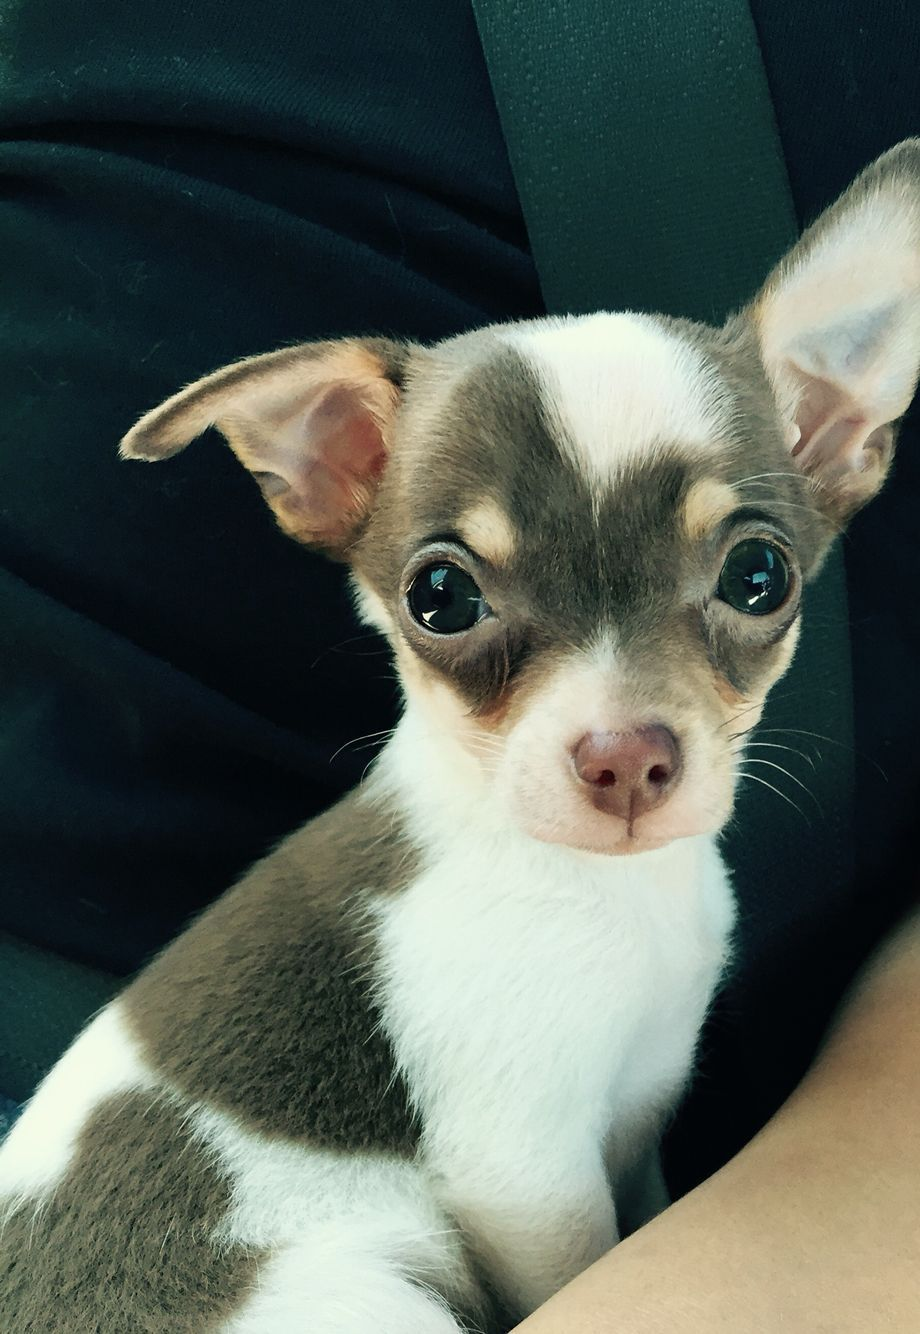 Dobs When Are Your Ears Going Up Chihuahua Chihuahua Puppies